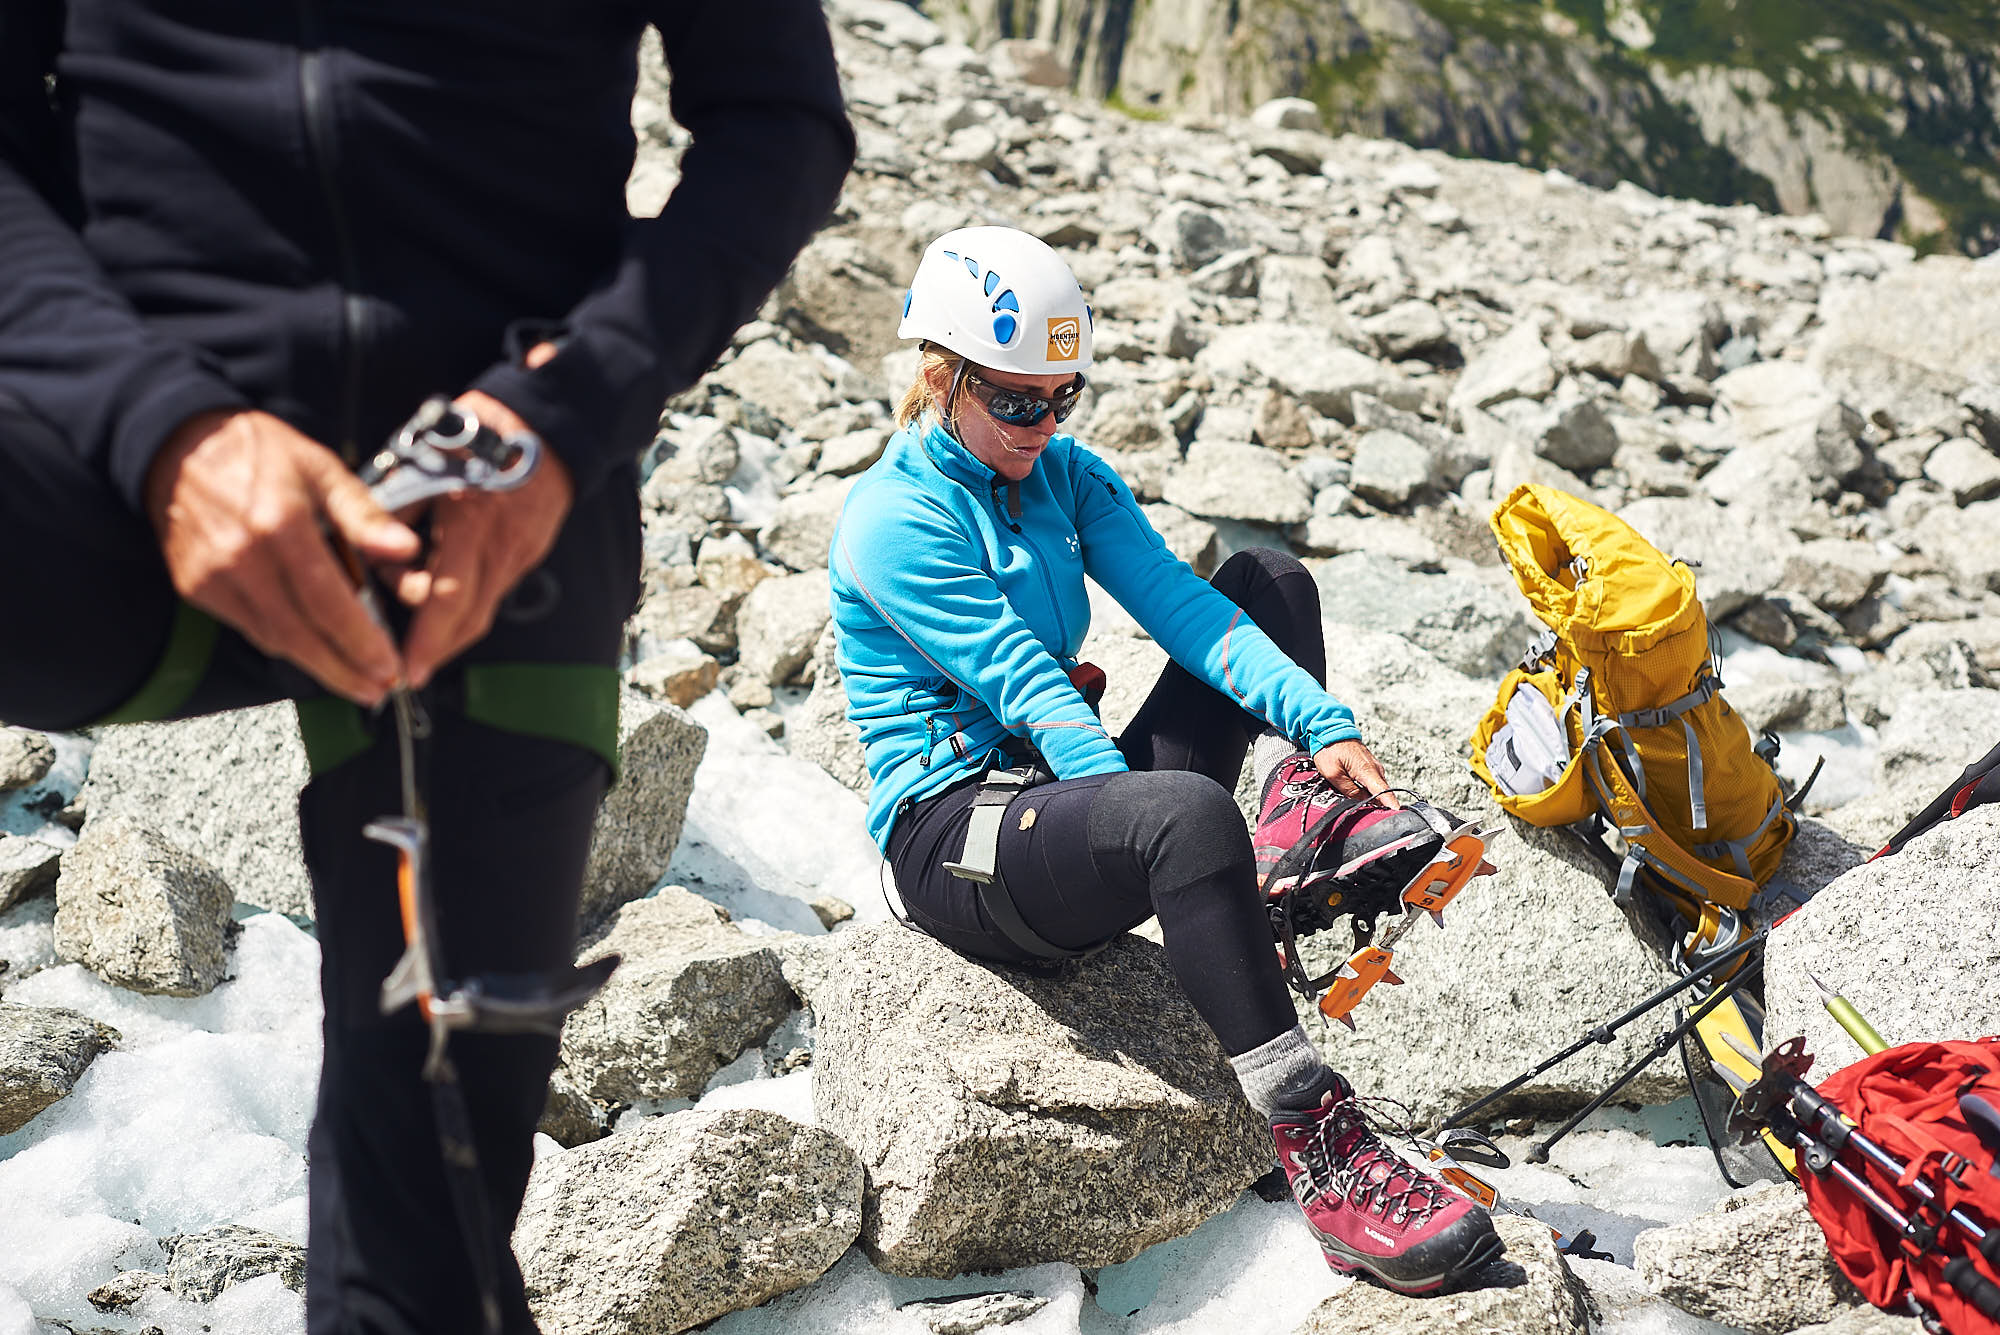 Mountaineer putting on crampons on the Mer de Glace glacier near Chamonix